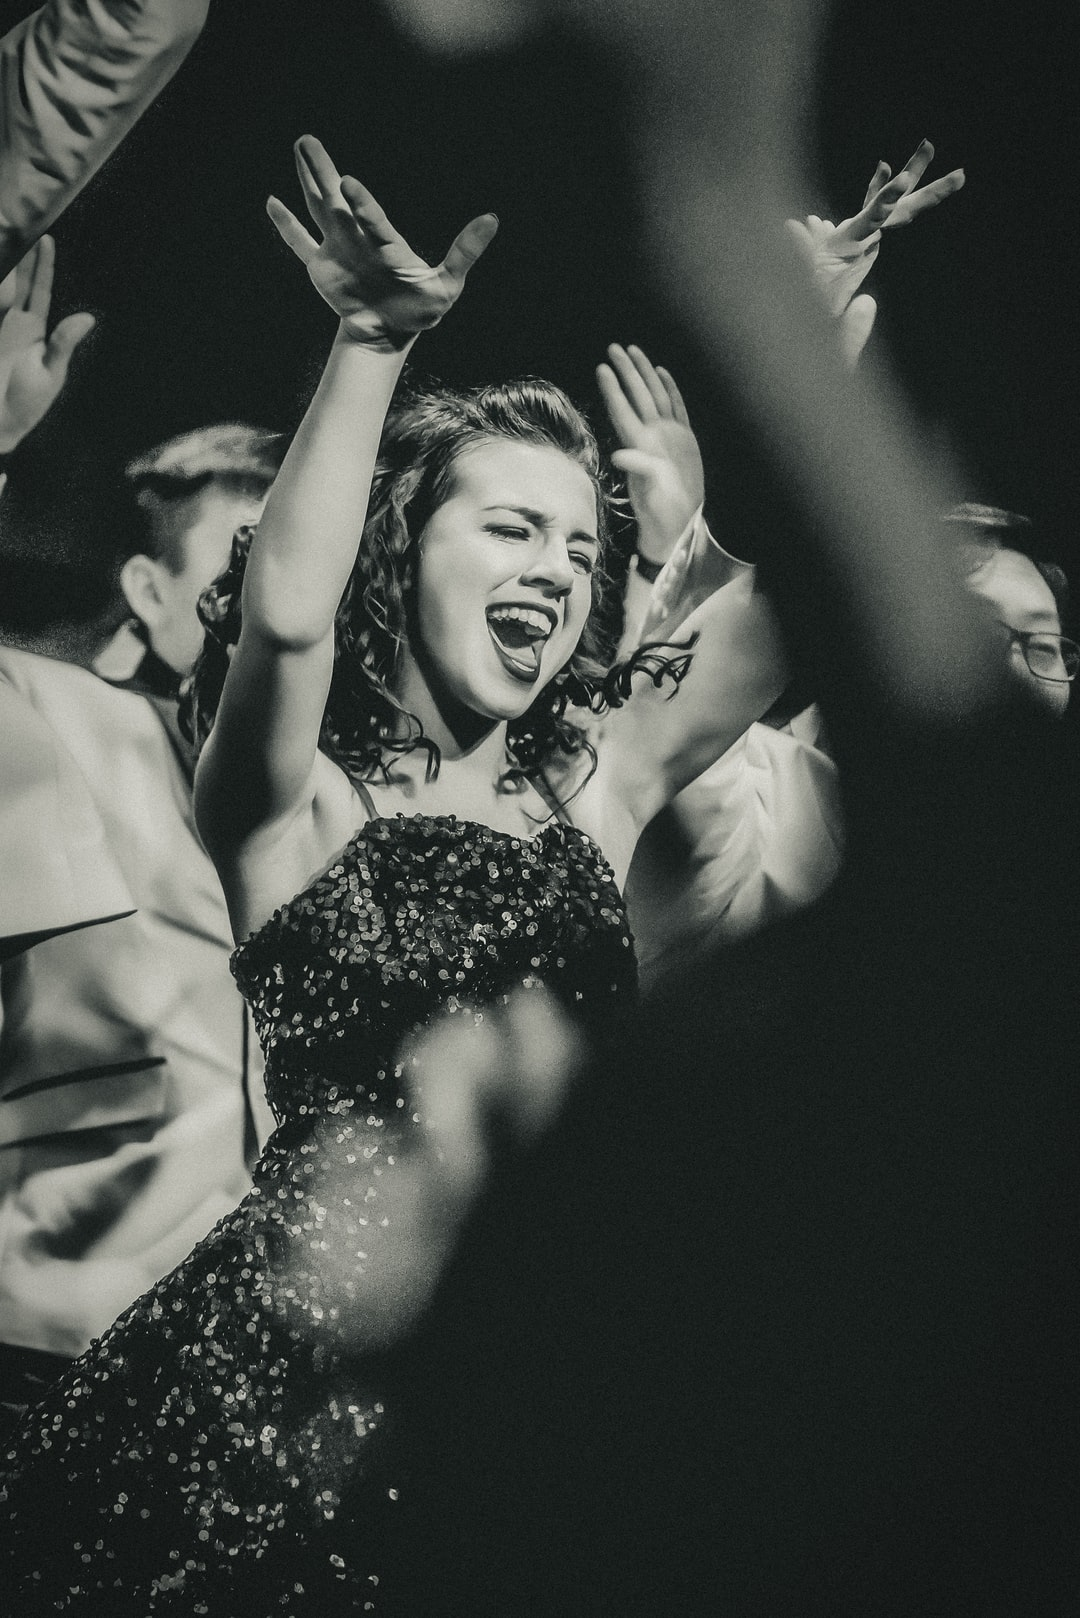 (Internation Women's Day) This young lady was all in for her high school show choir event.  I love the energy and the willingness to just throw herself into the performance 100%.   The show lights ended up giving this a 1940's newspaper vibe - which I totally loved and thought made a perfect fit.